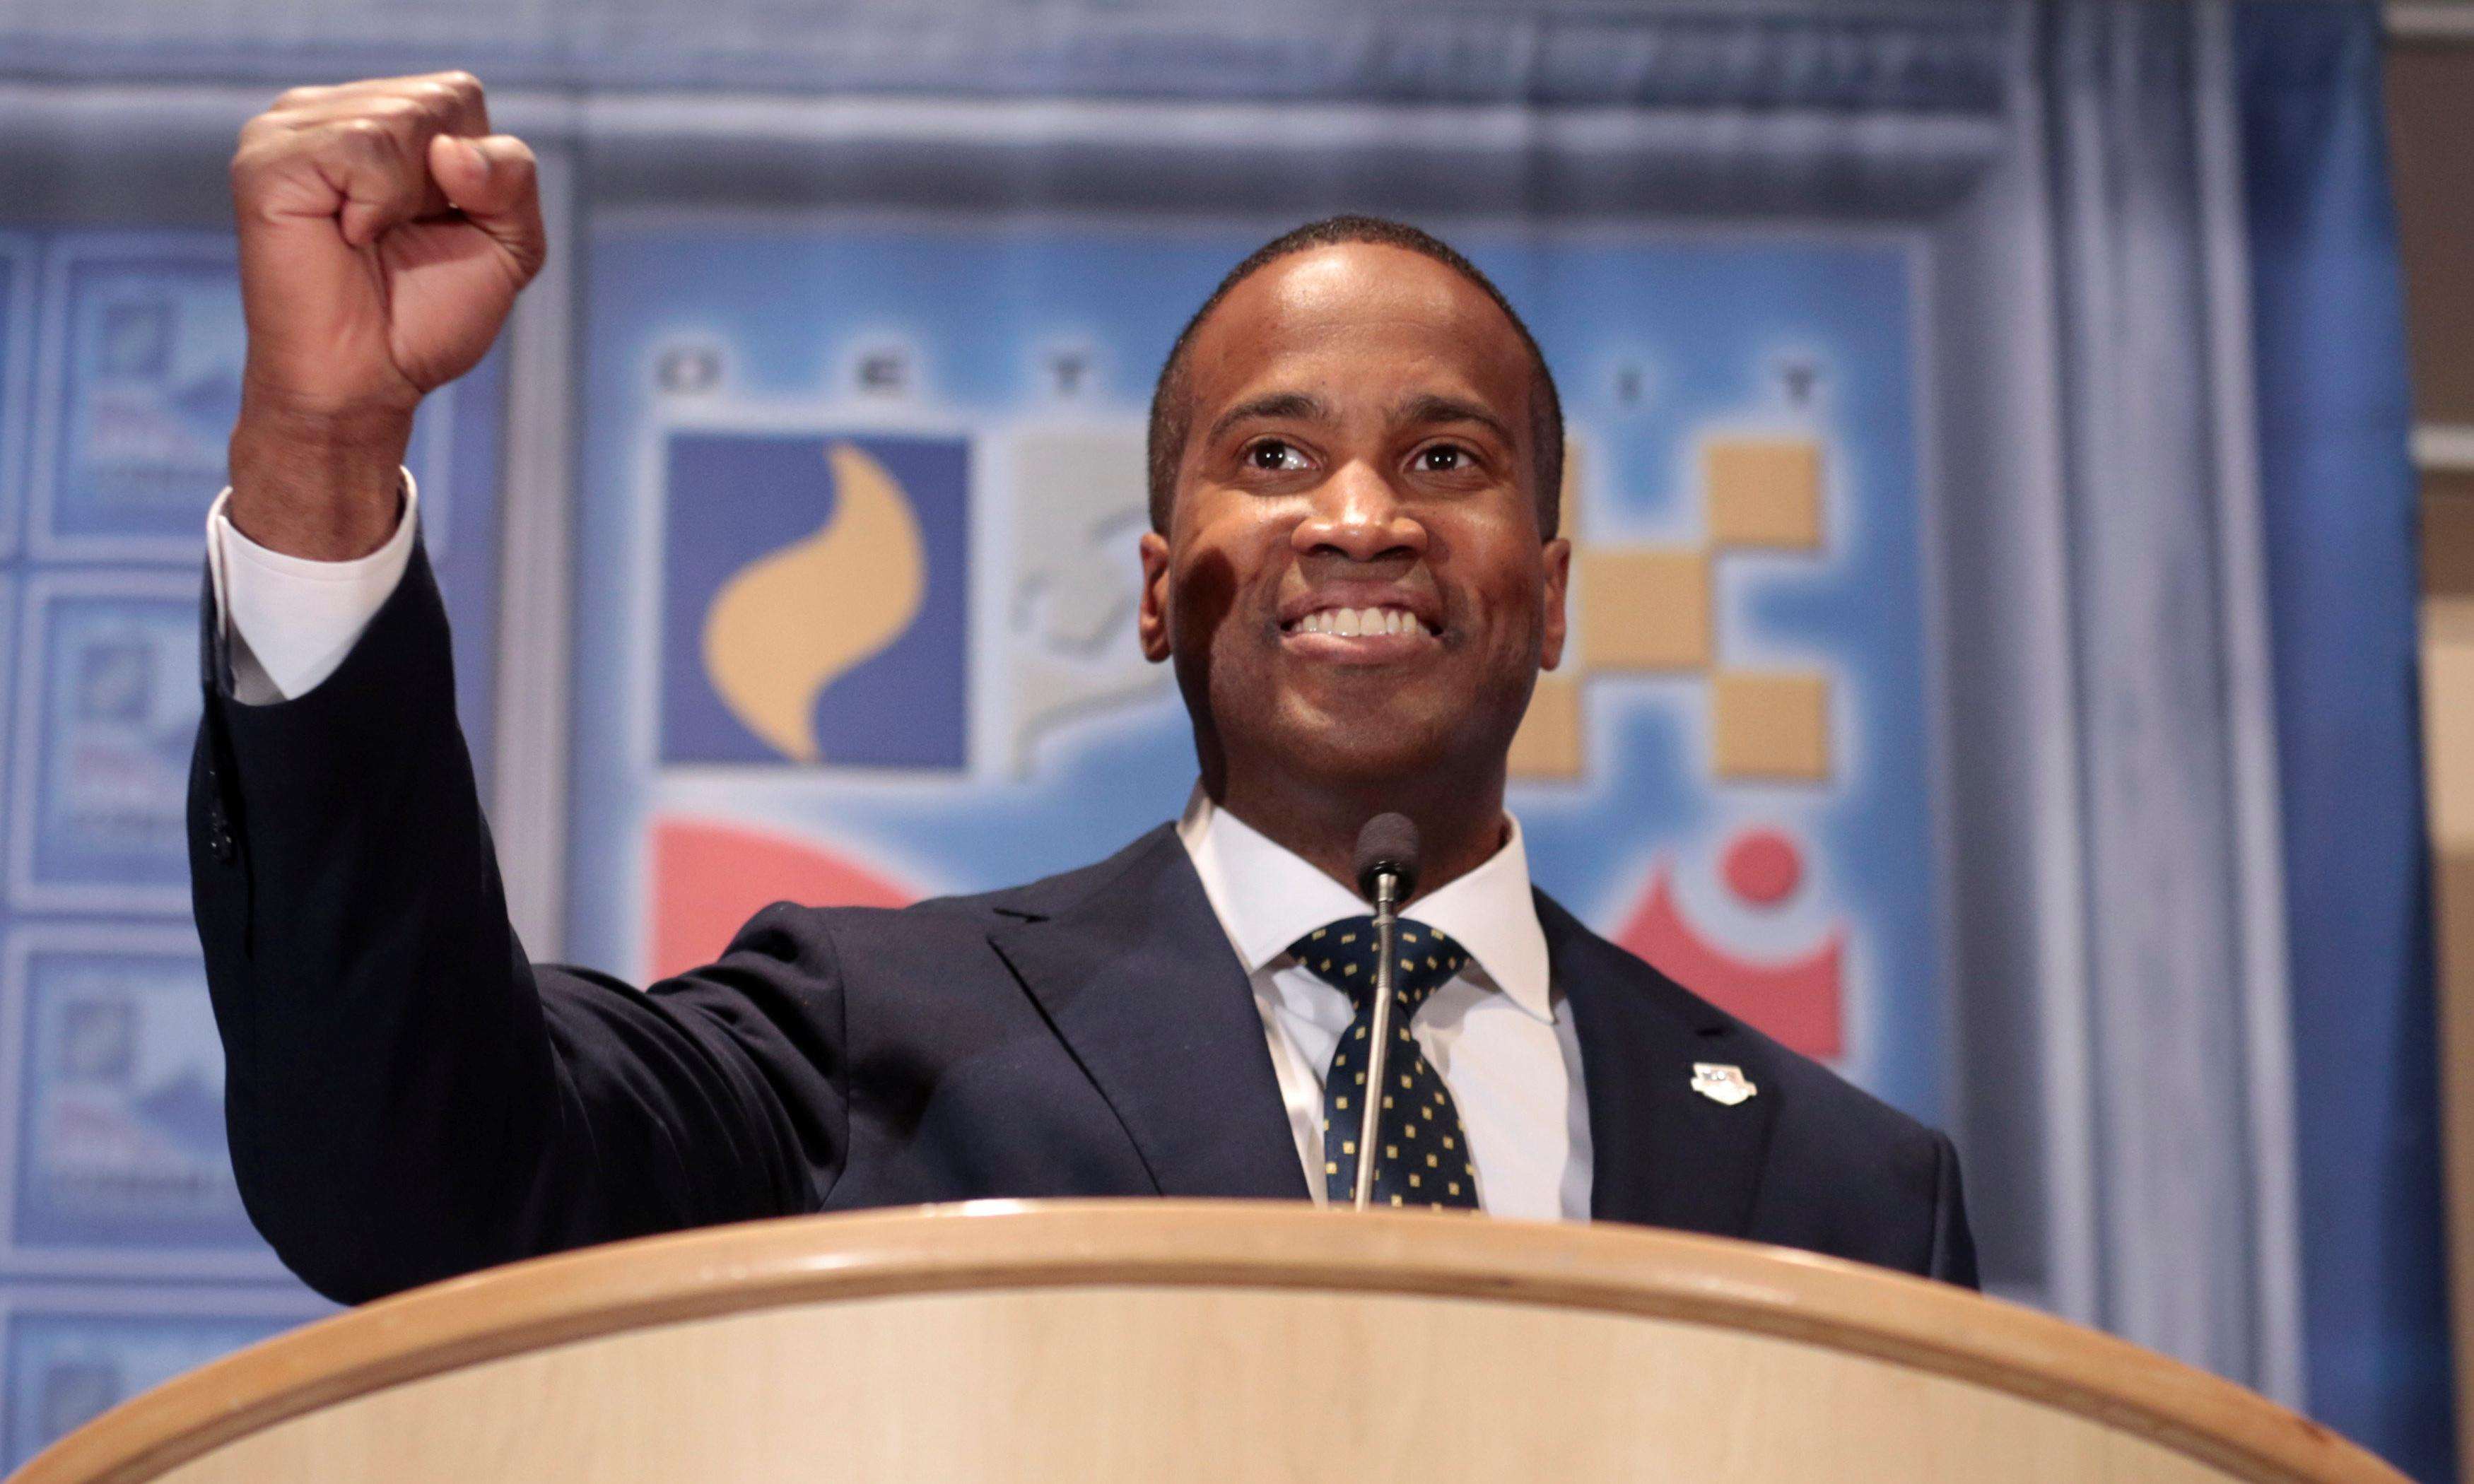 John James: 'Battle-tested, ready to lead' … and a black American for Trump